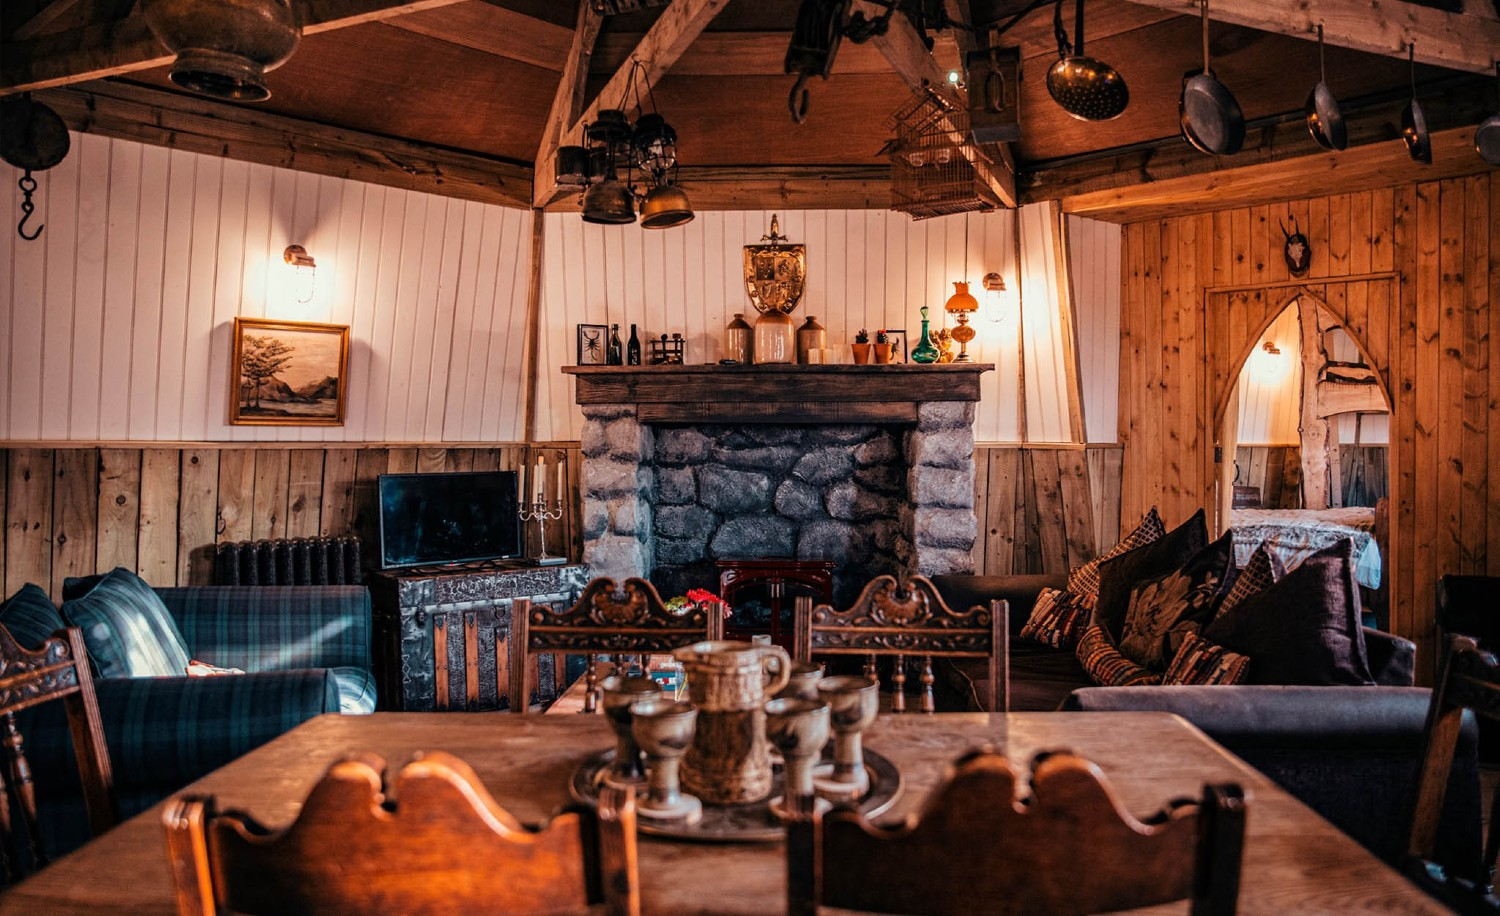 The interior of the groundskeeper's cottage looks a lot like Hagrid's hut, but it has all the comforts of a luxury holiday house.